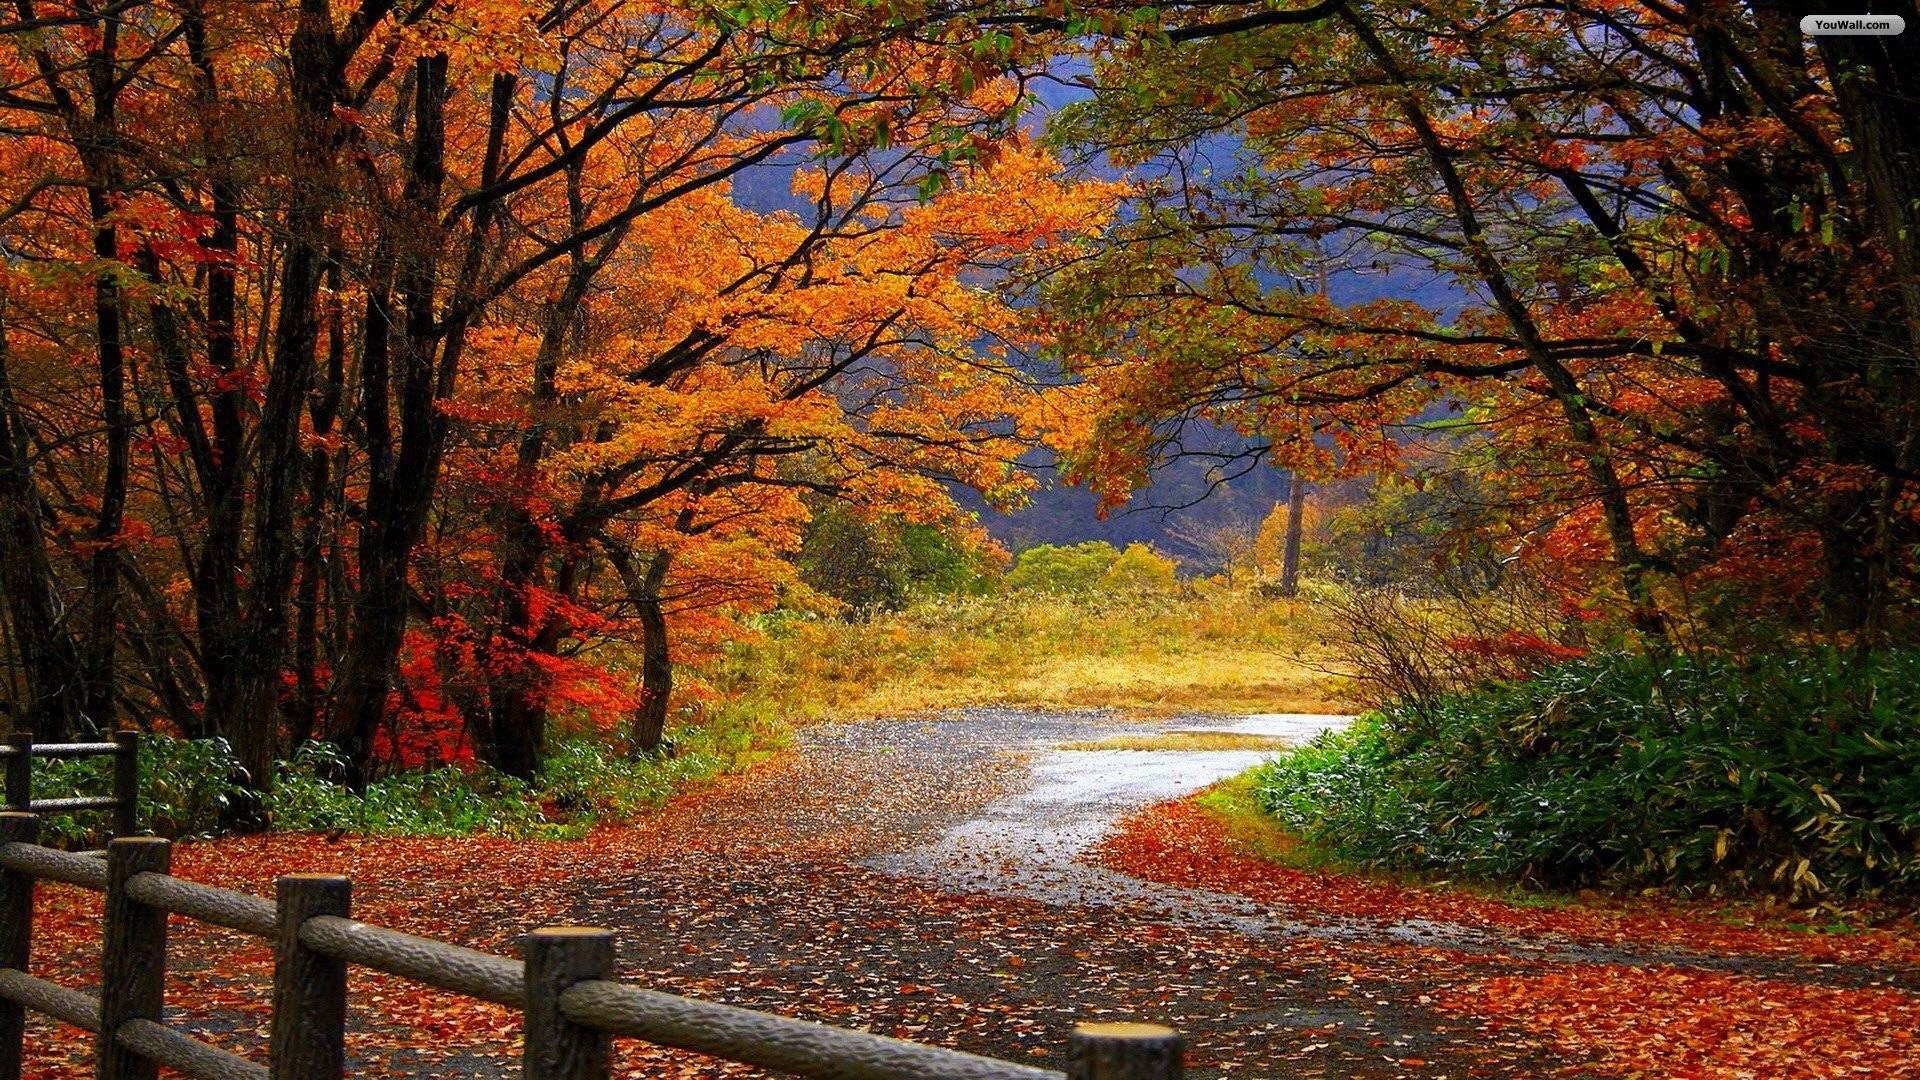 Scenary Wallpaper Fall Scenery Wallpapers Wallpaper Cave